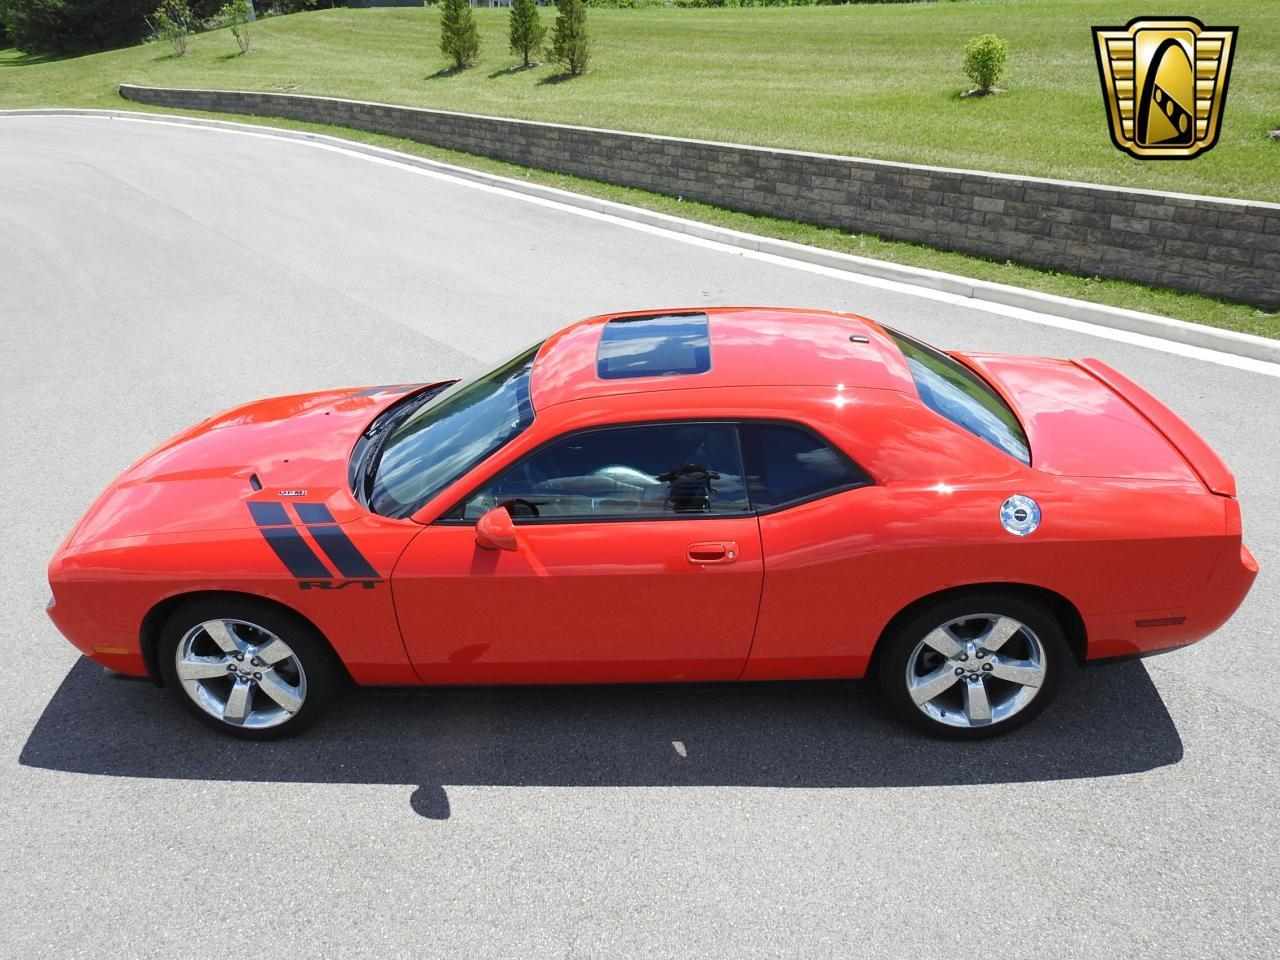 Large Picture of 2009 Challenger located in Kenosha Wisconsin - $19,995.00 Offered by Gateway Classic Cars - Milwaukee - LCTZ